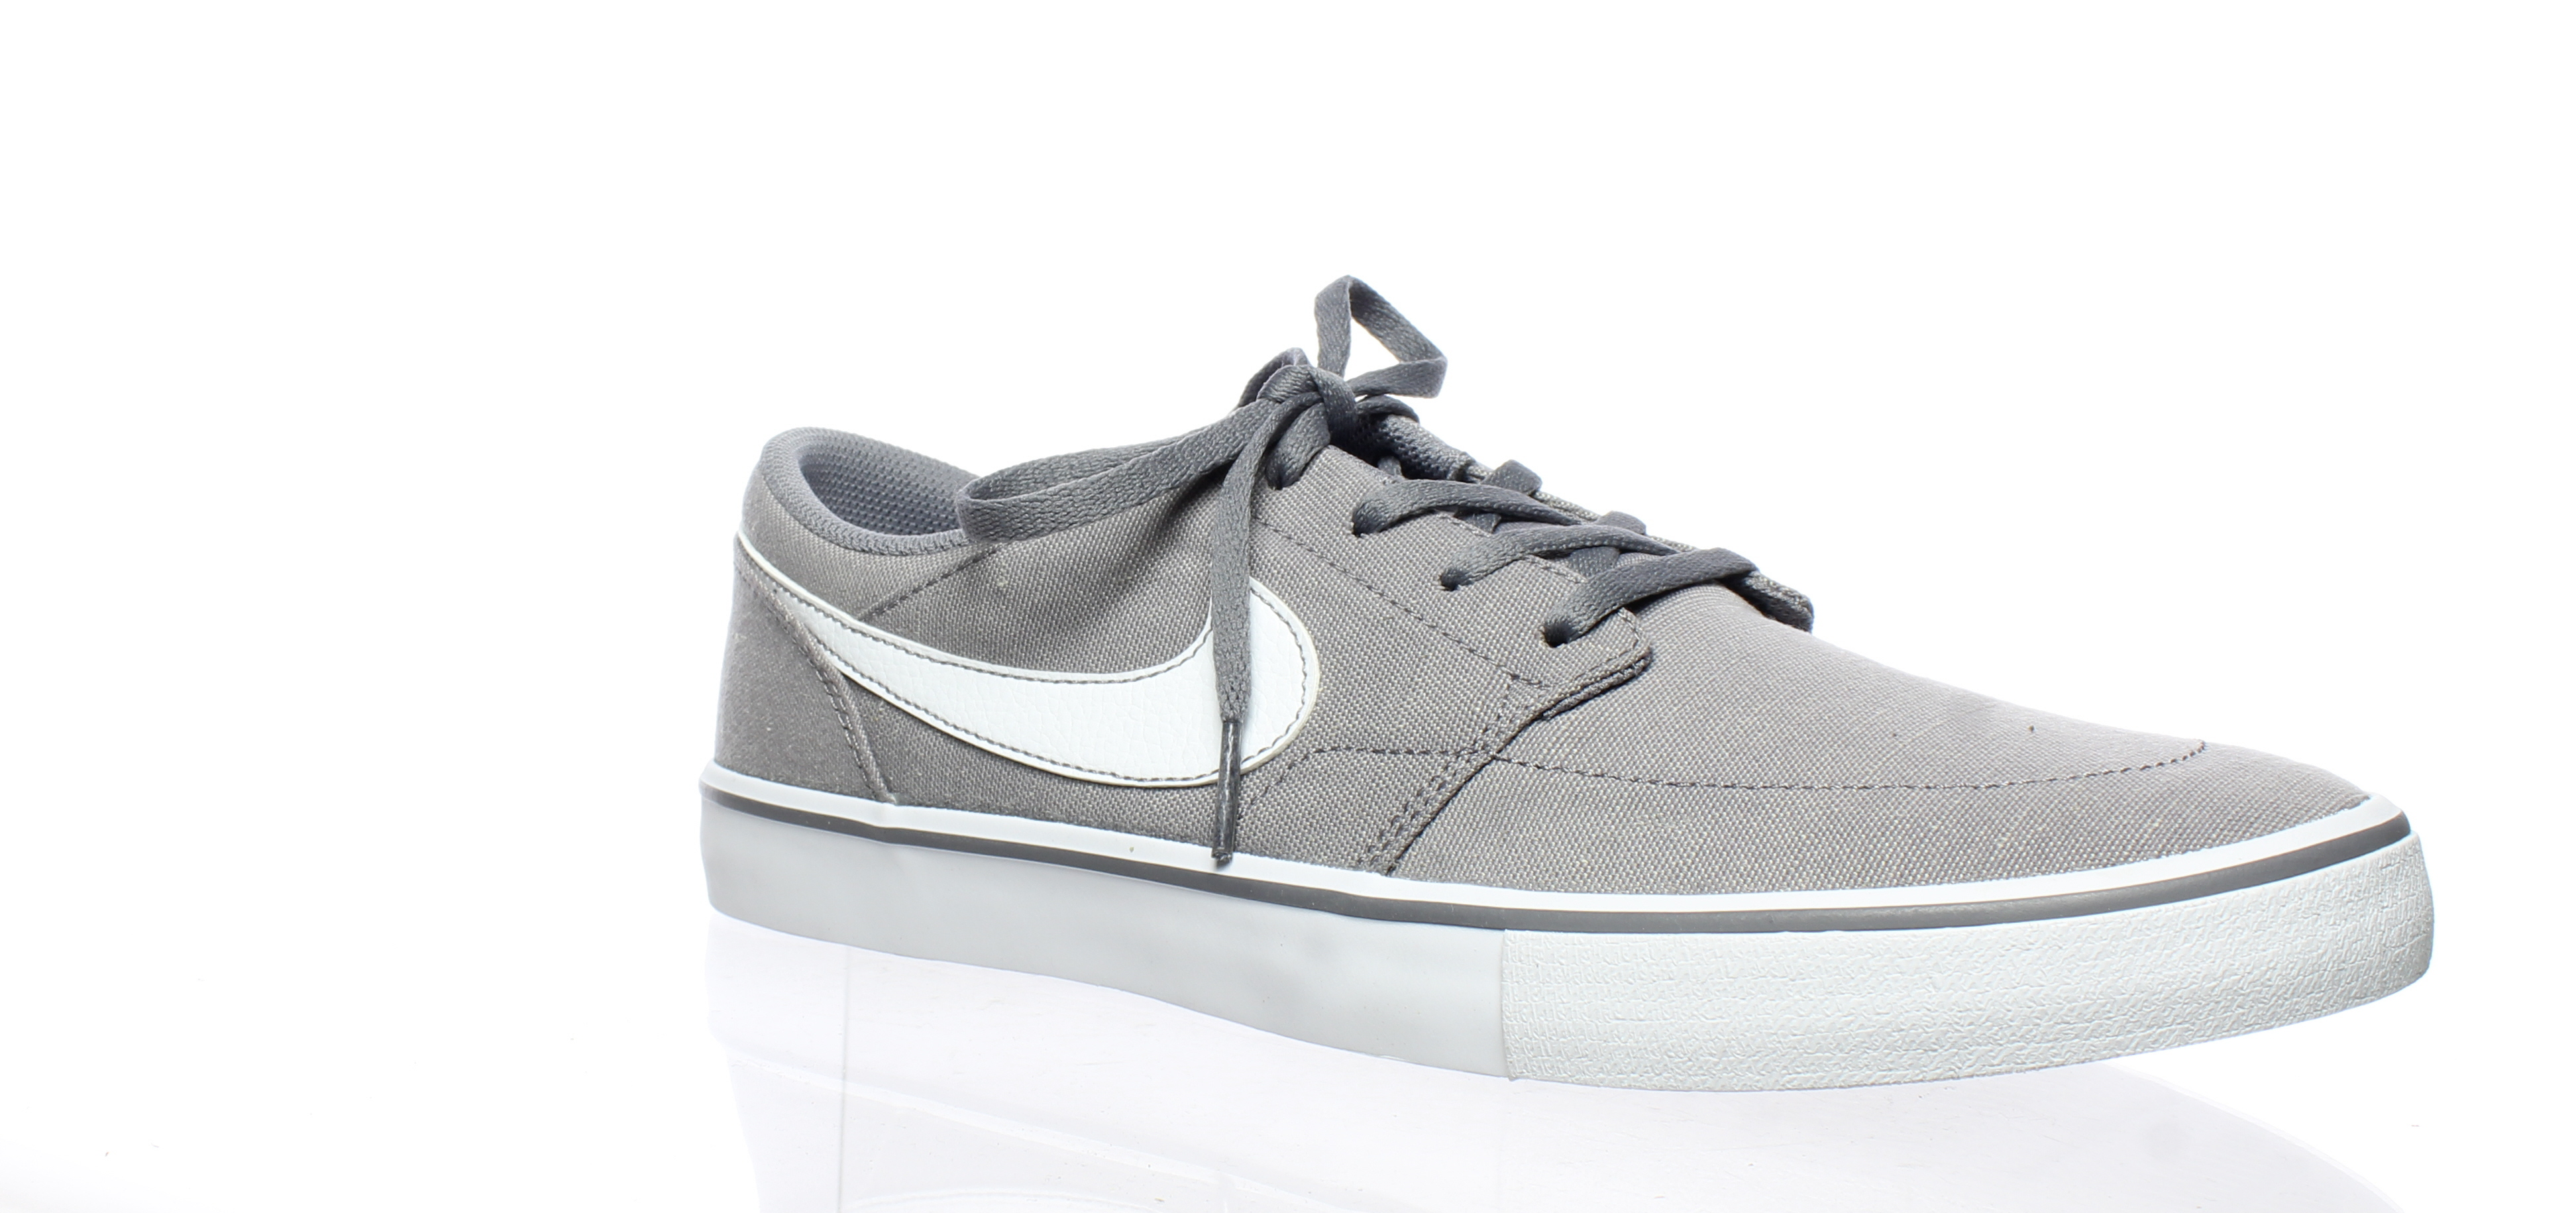 7242533663 Details about Nike Mens Sb Portmore Ii Gray Skateboarding Shoes Size 10.5  (185456)